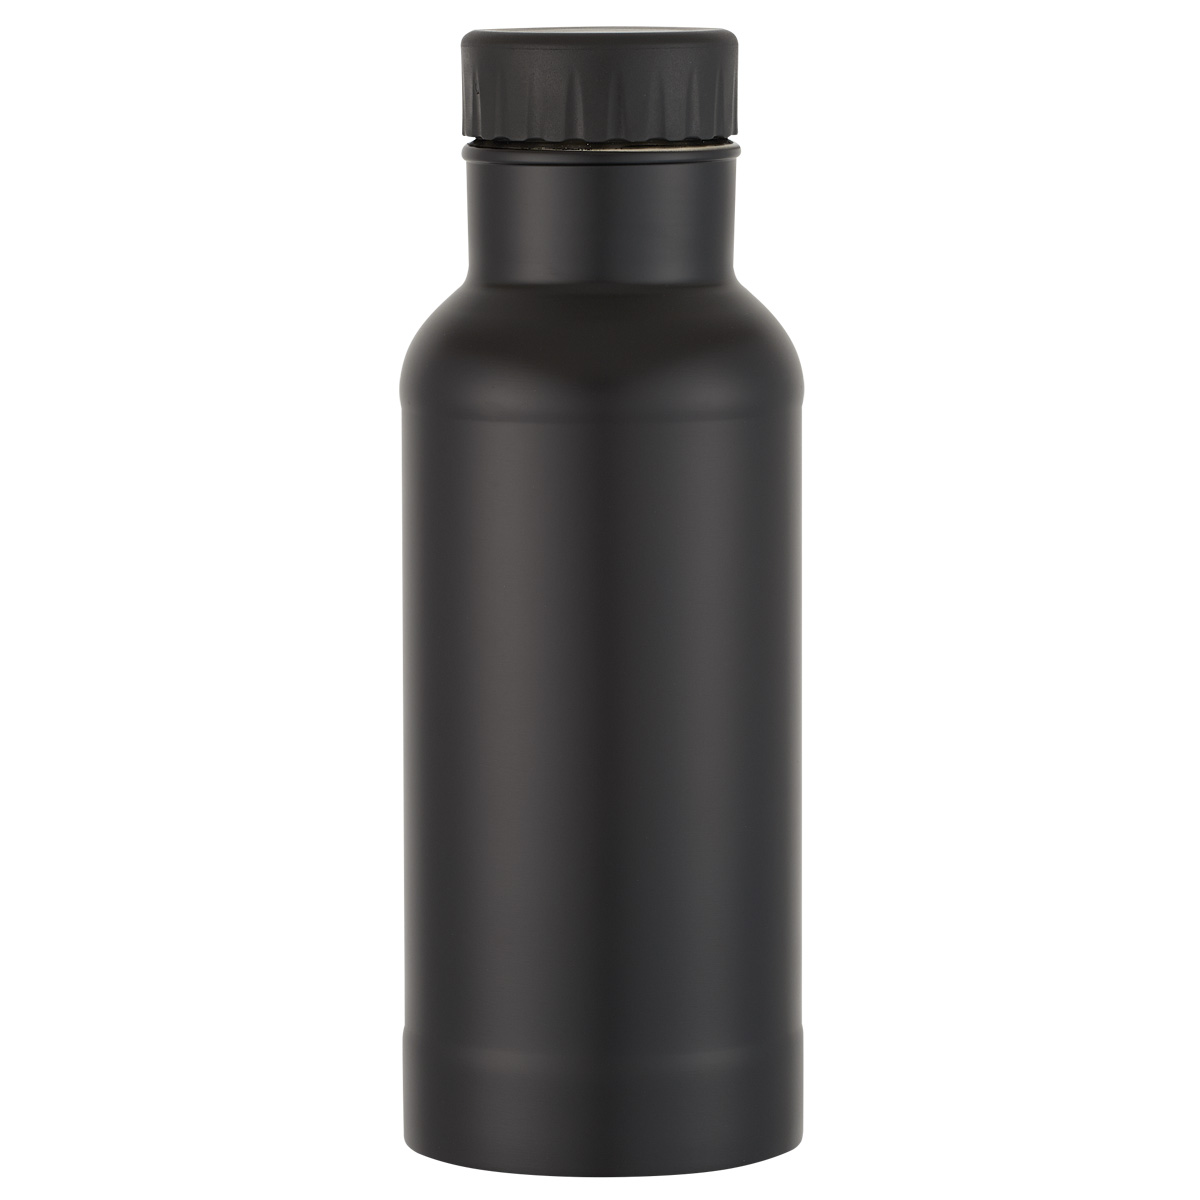 #CM 5735 - 64 Oz. Endeavor Stainless Steel Growler